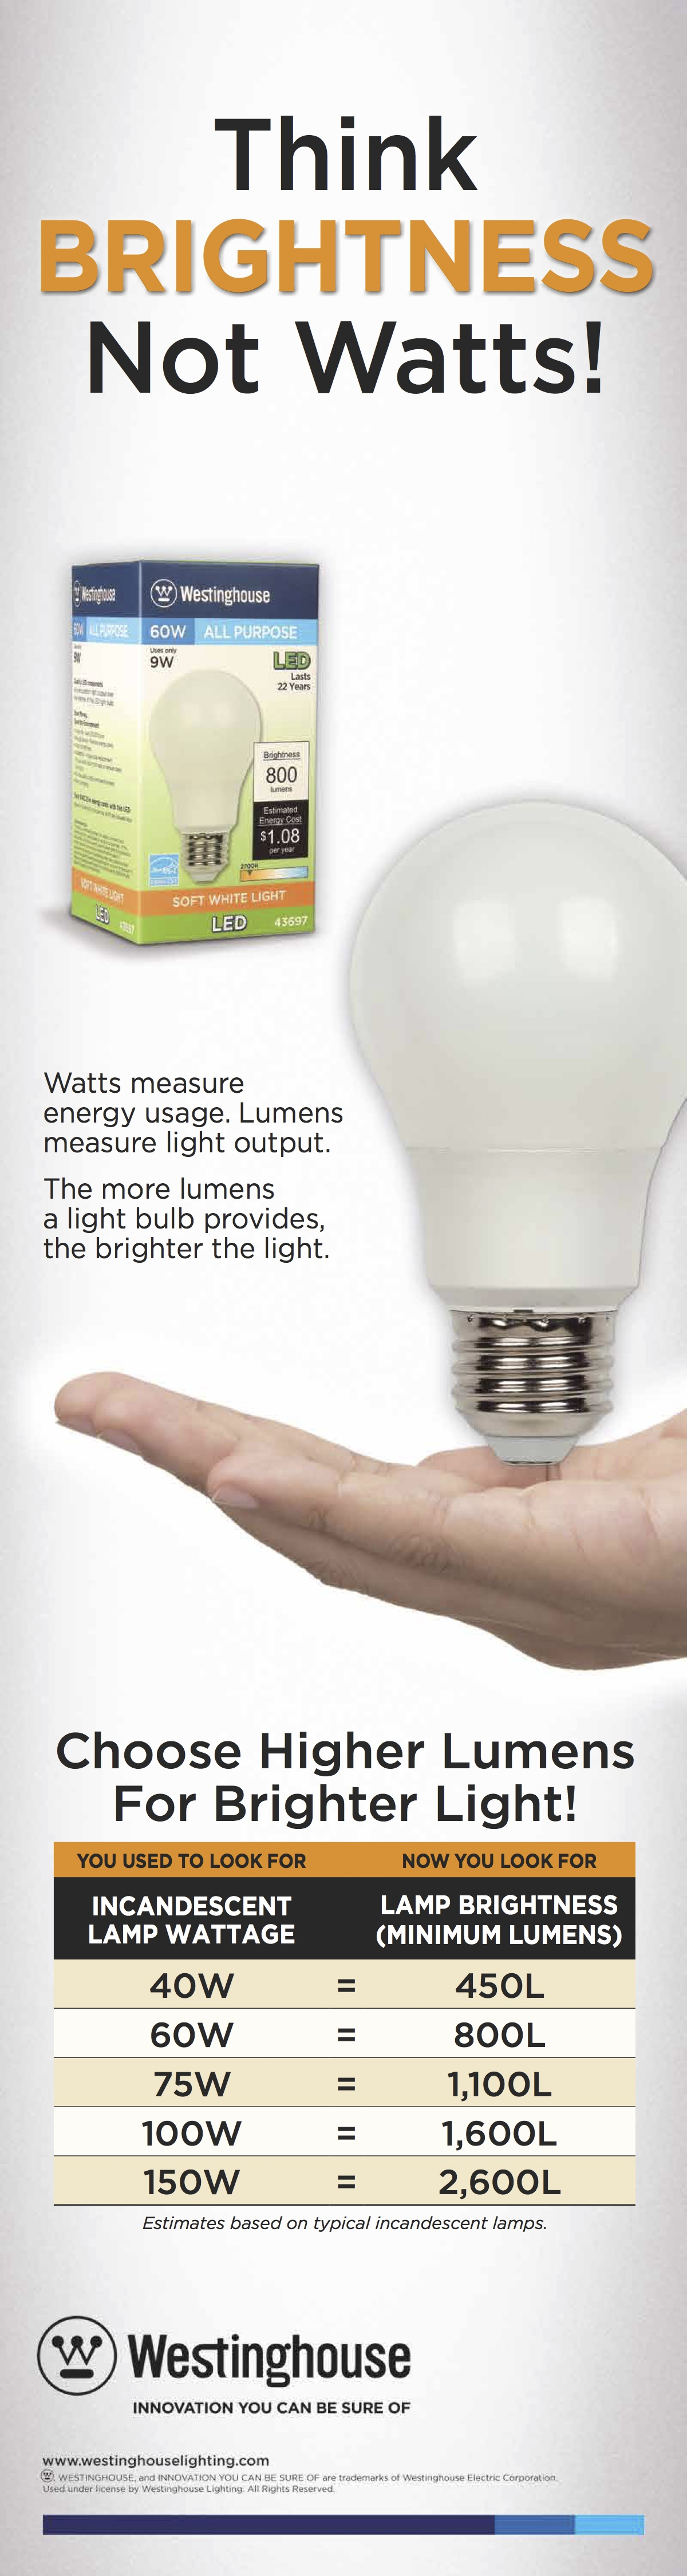 Brightness Lumens V Watts Lighting Education By Westinghouse Lighting Westinghouse Incandescent Lamp Bright